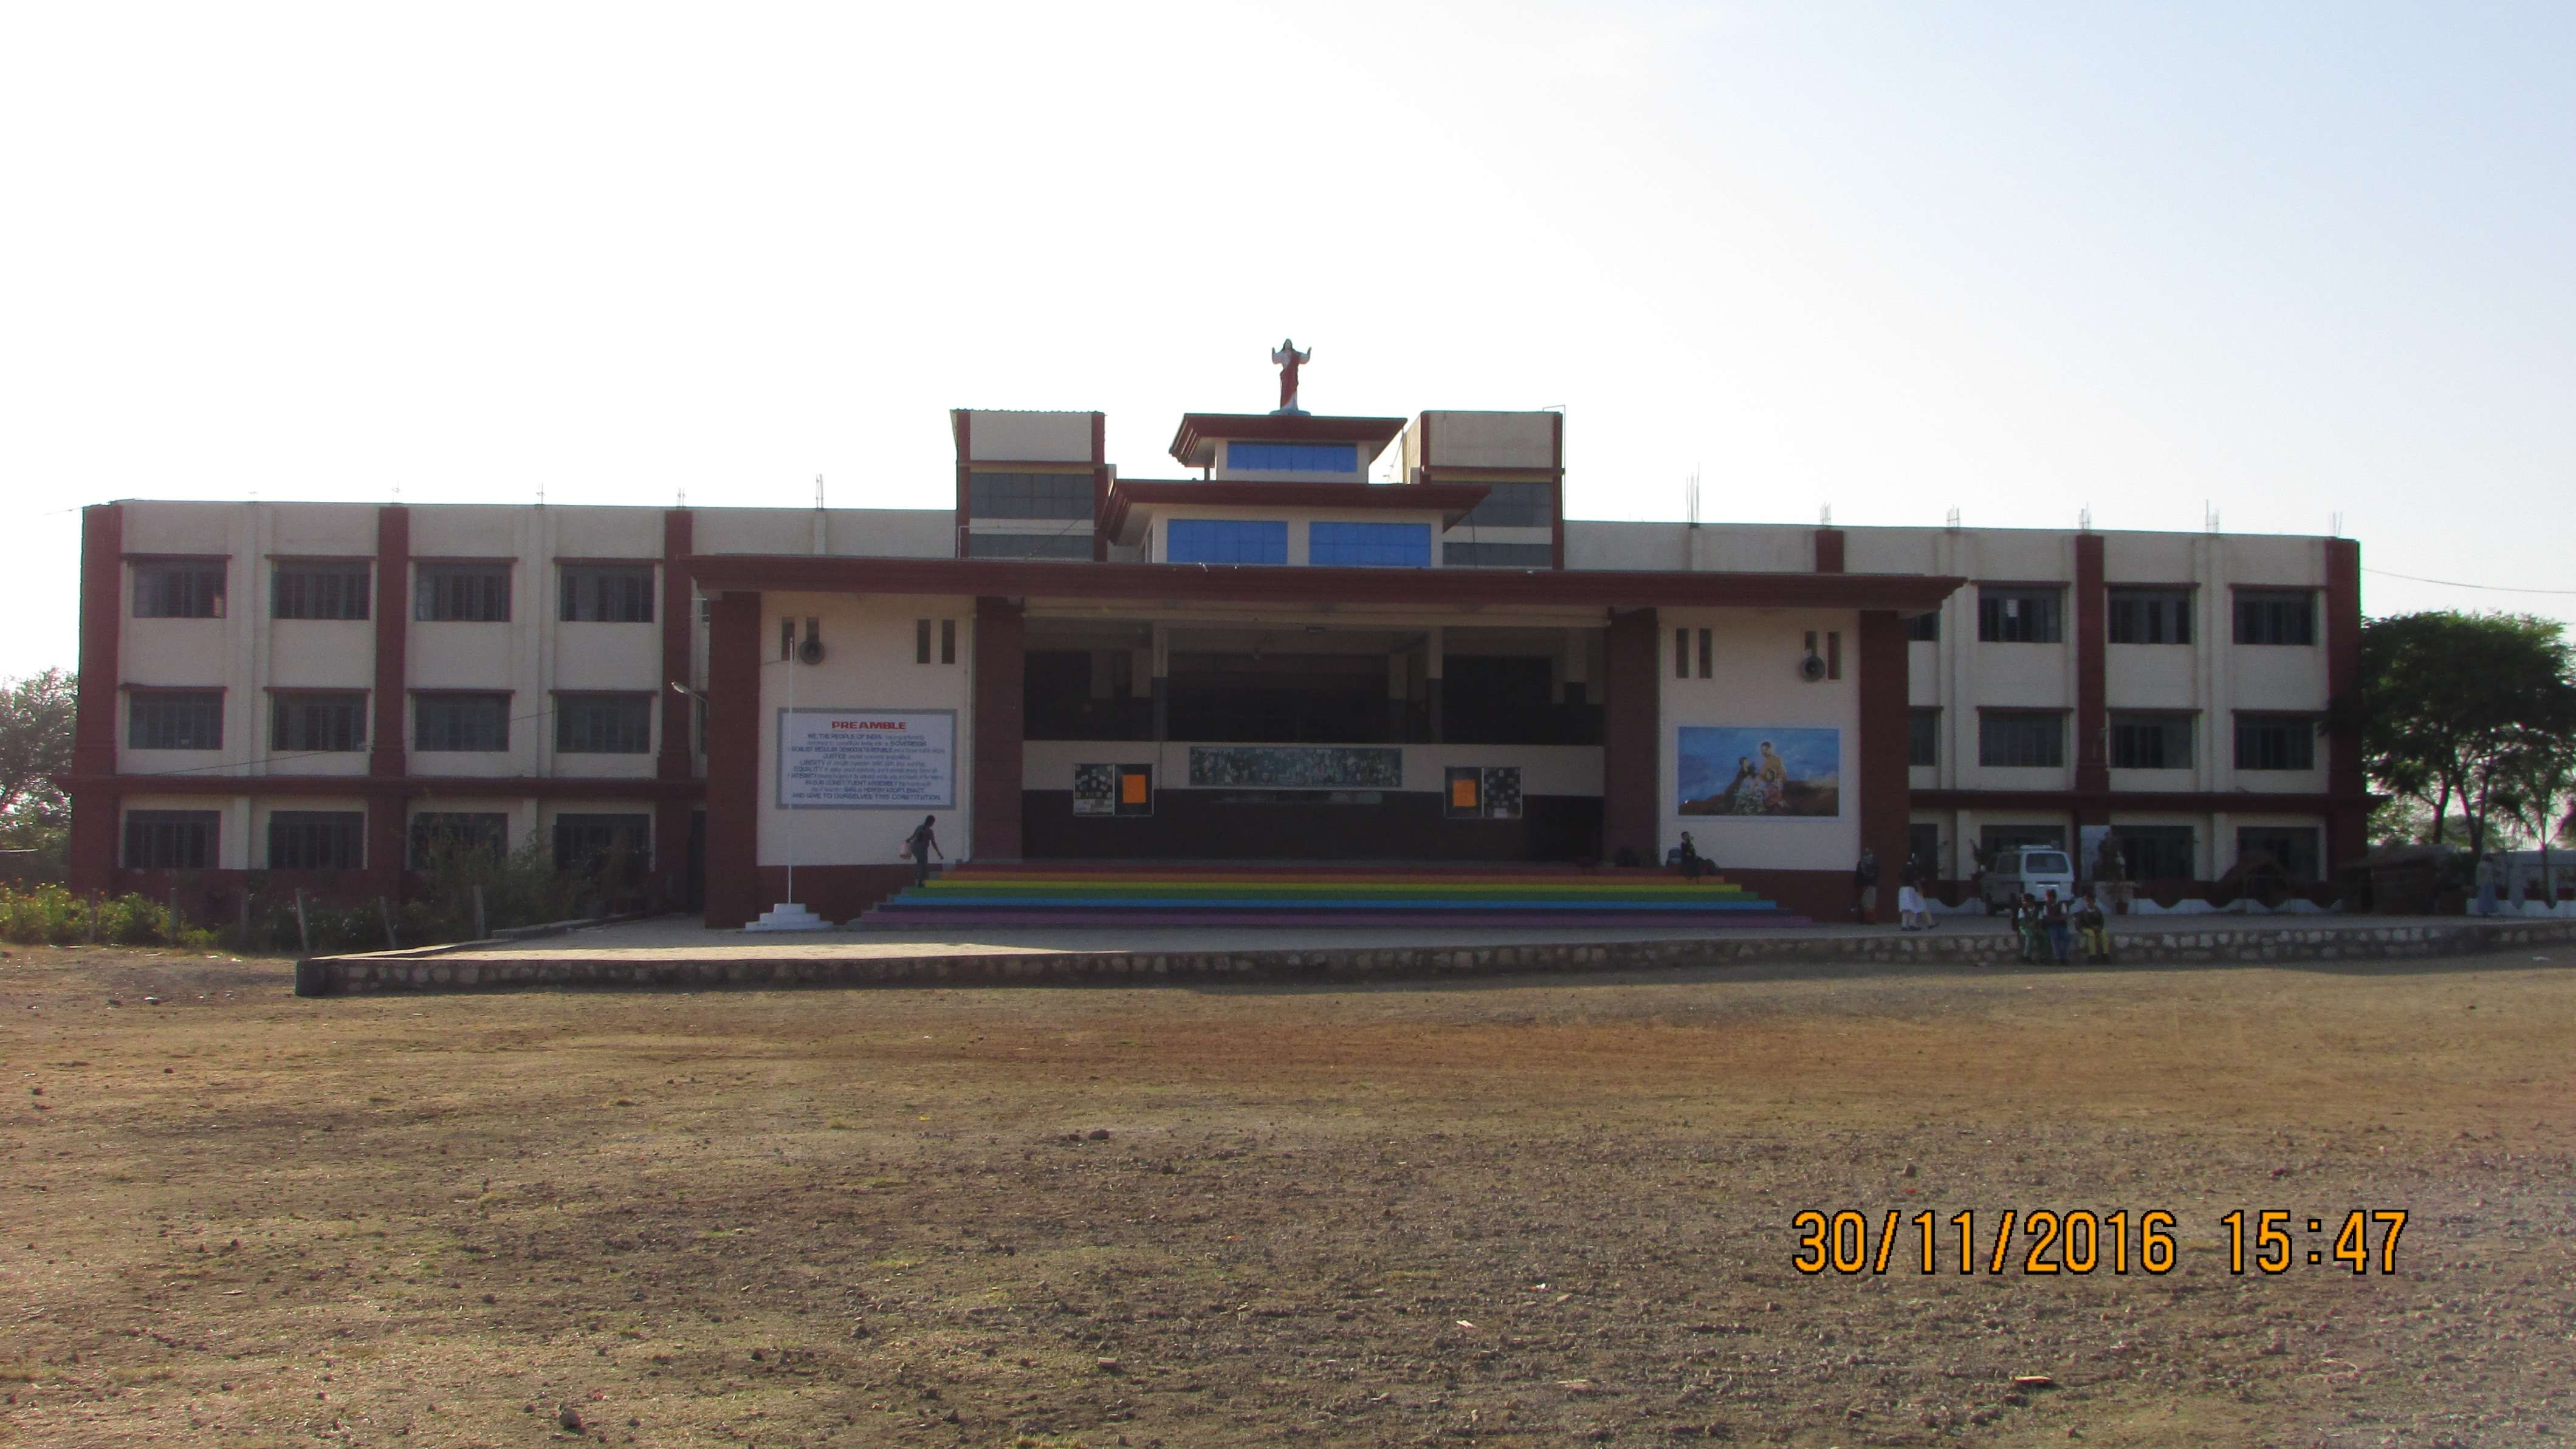 St Francis of assisi School seoni besides state bank of Indore barapathar seoni 1030518